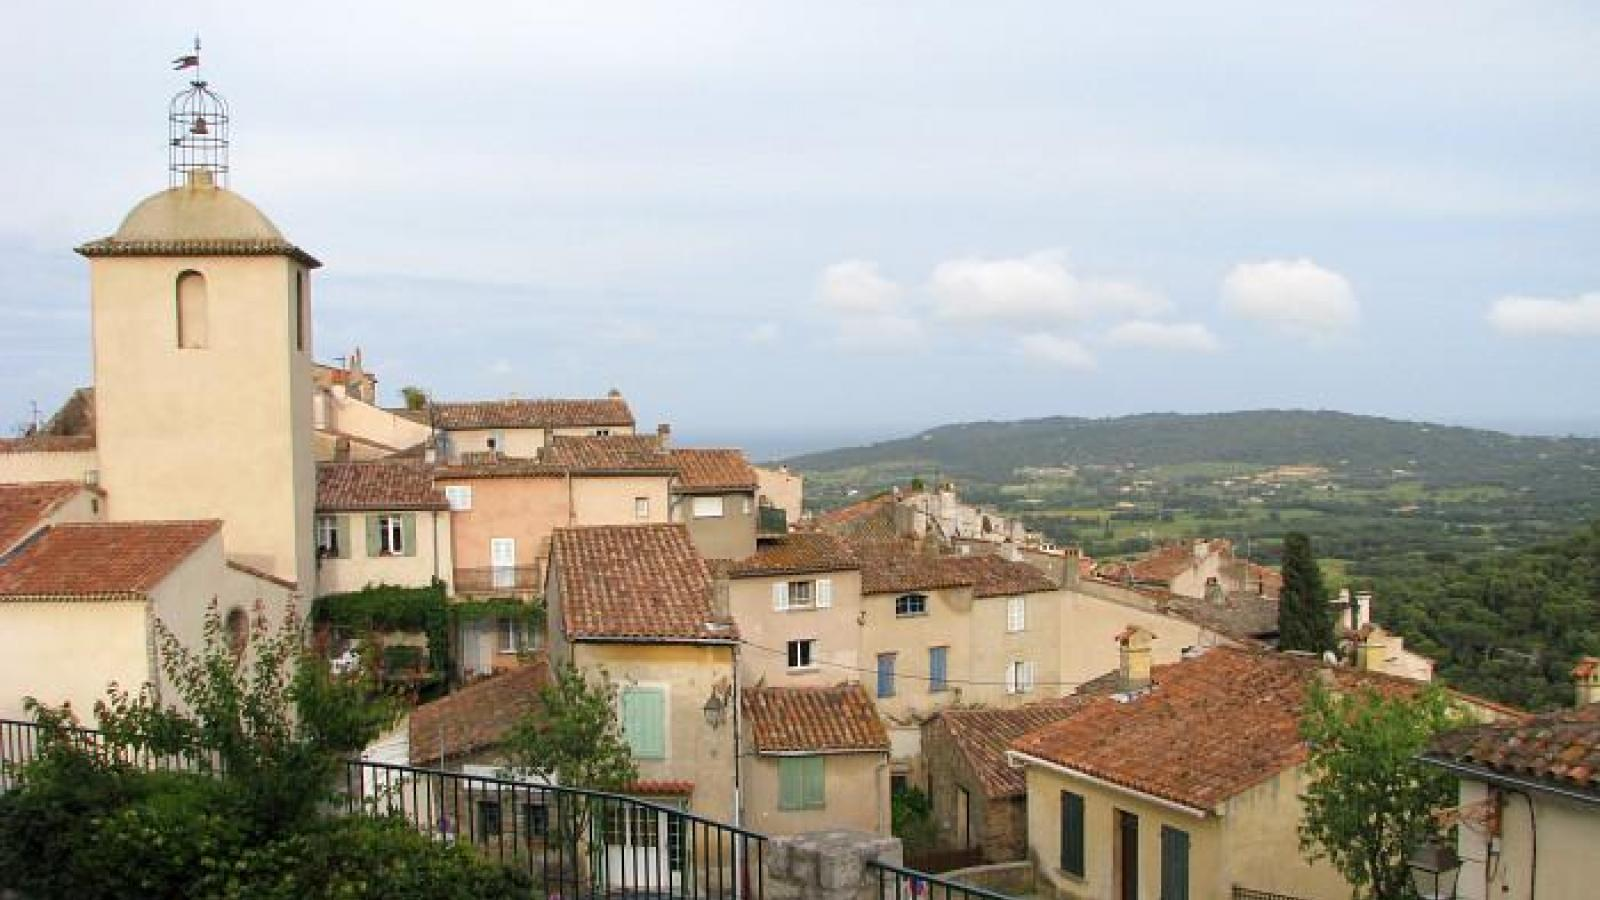 The scenic wonders of the Gulf of Saint-Tropez